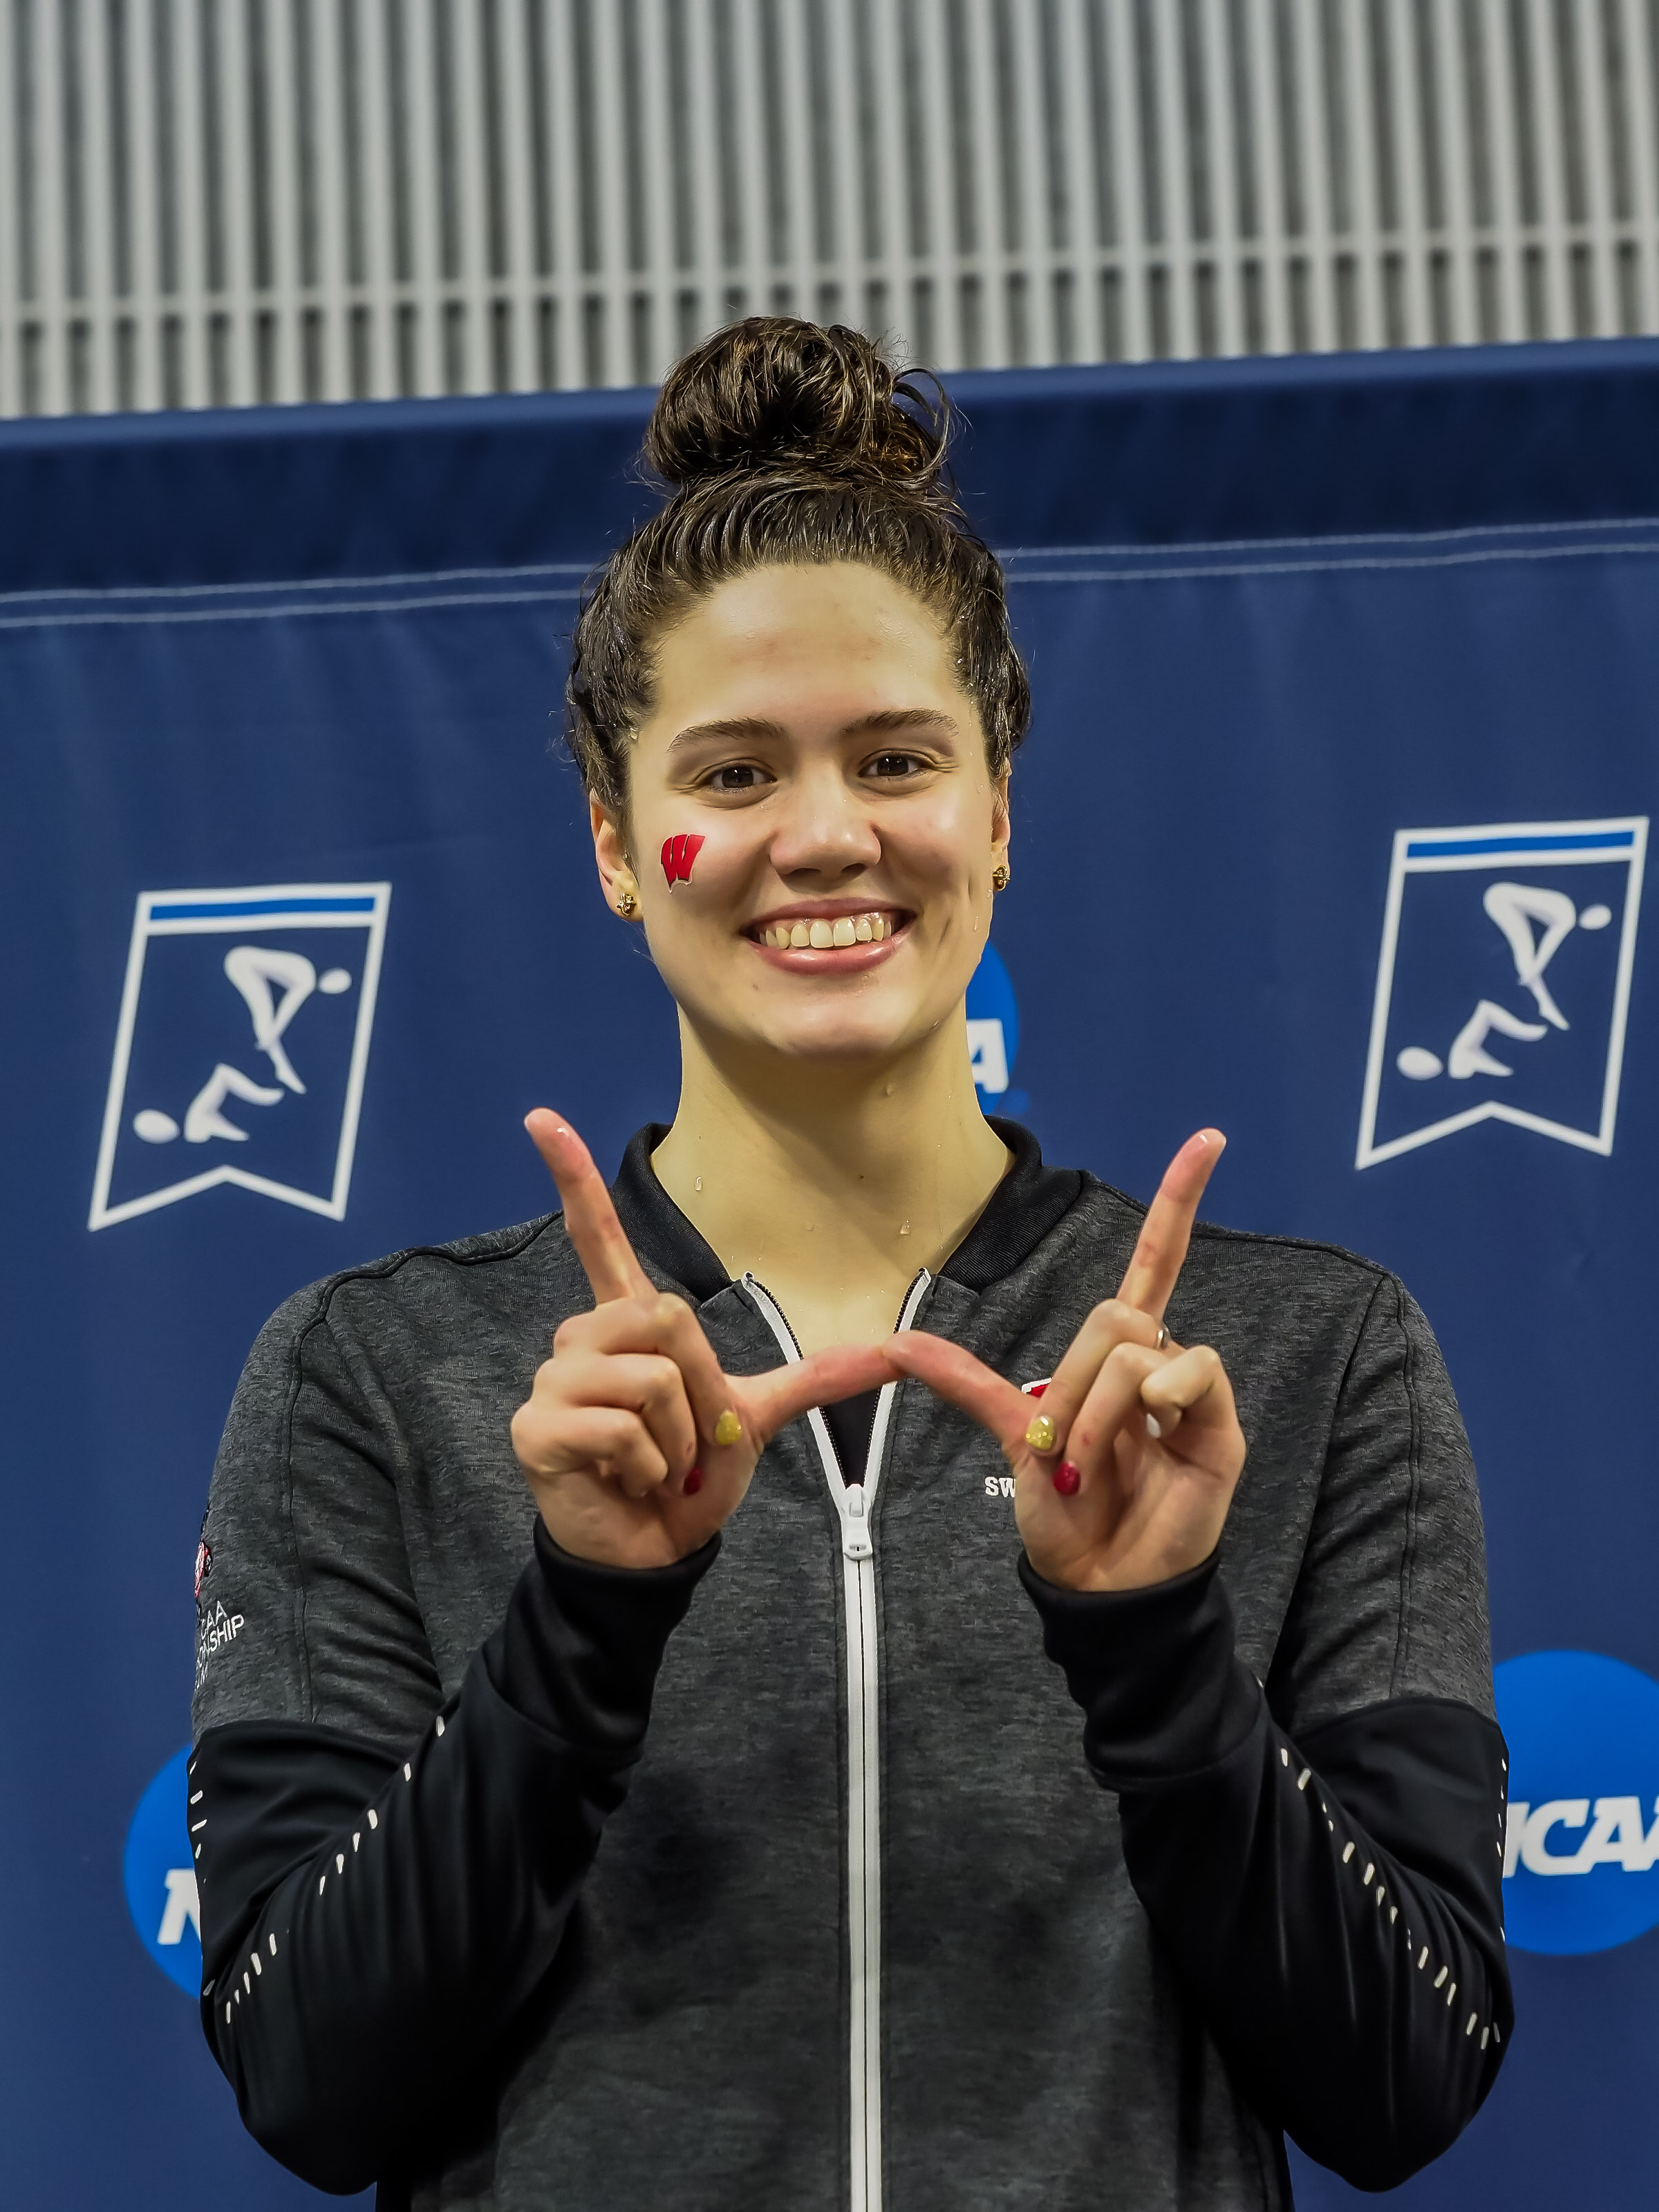 Beata Nelson Unleashes 49.18 in 100 Back for New American Record - Swimming World News